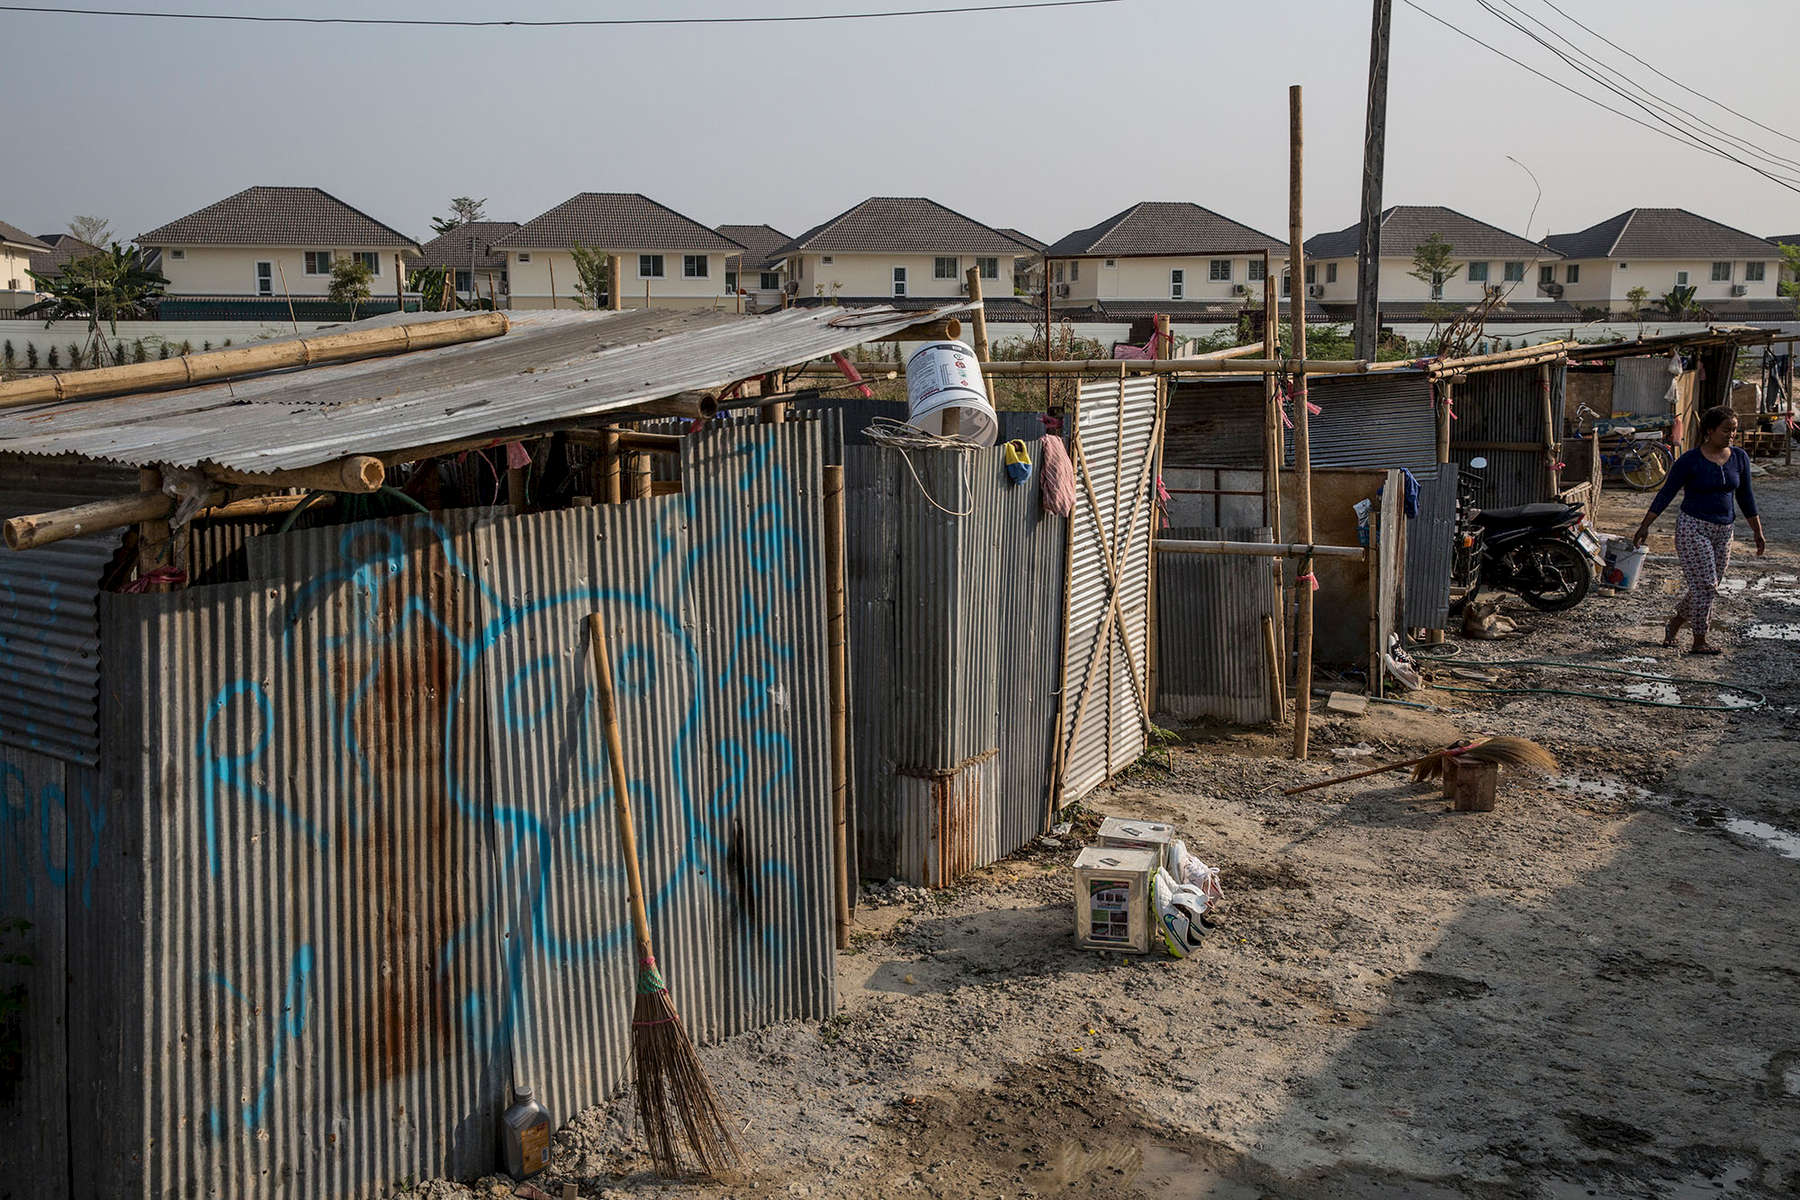 A camp is pictured beside the subdivision where migrants work. When construction is complete, the entire camp often moves to a new location to start another project.